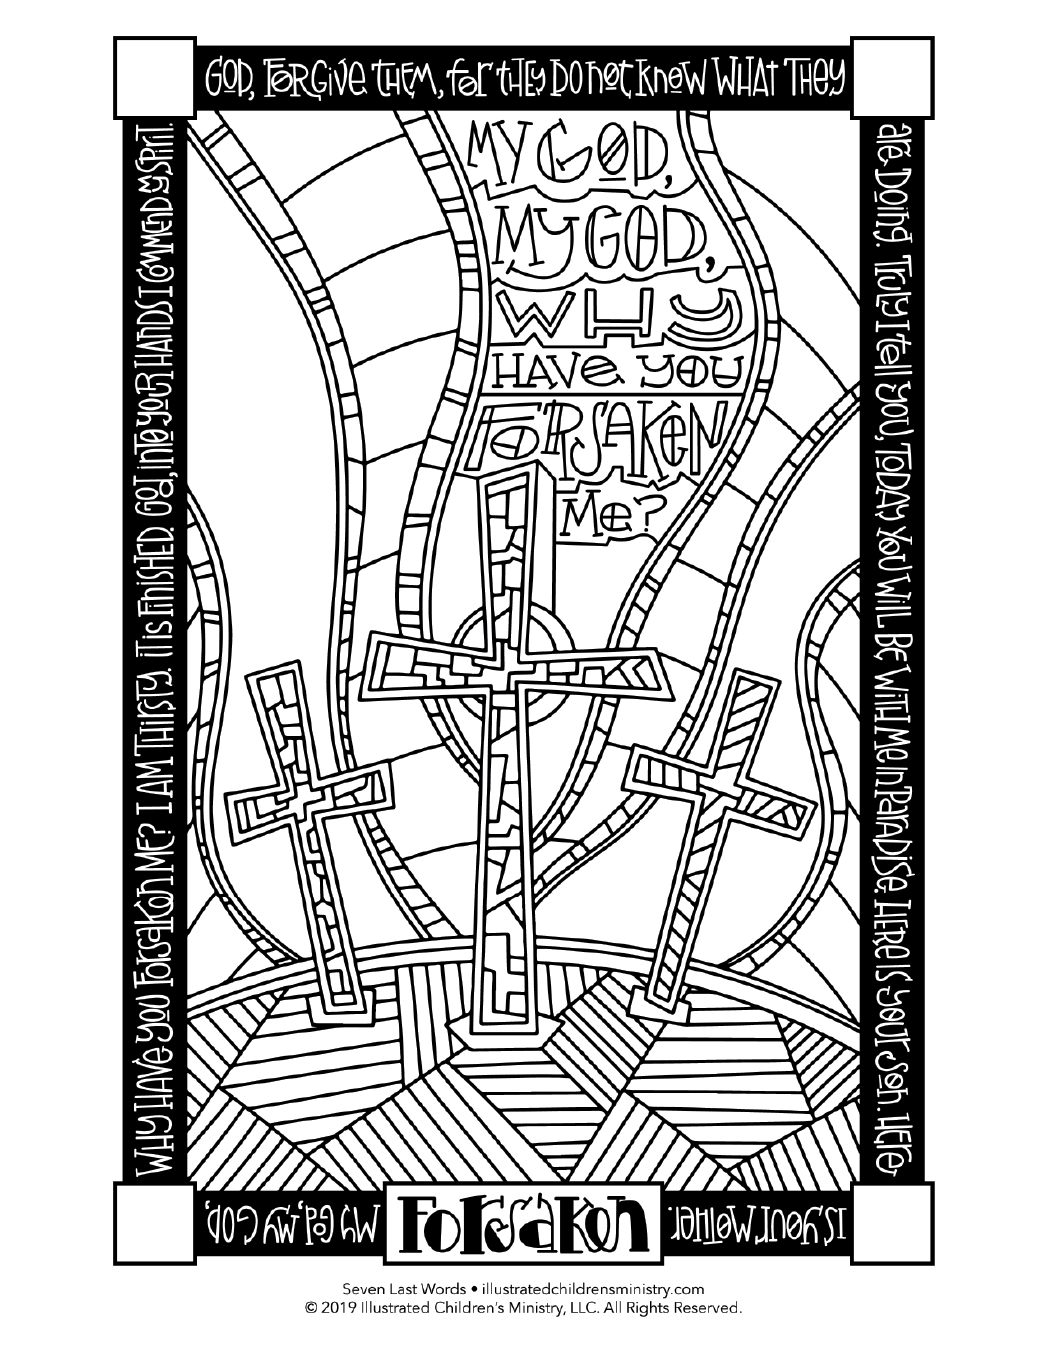 Seven Last Words coloring page - Forsaken